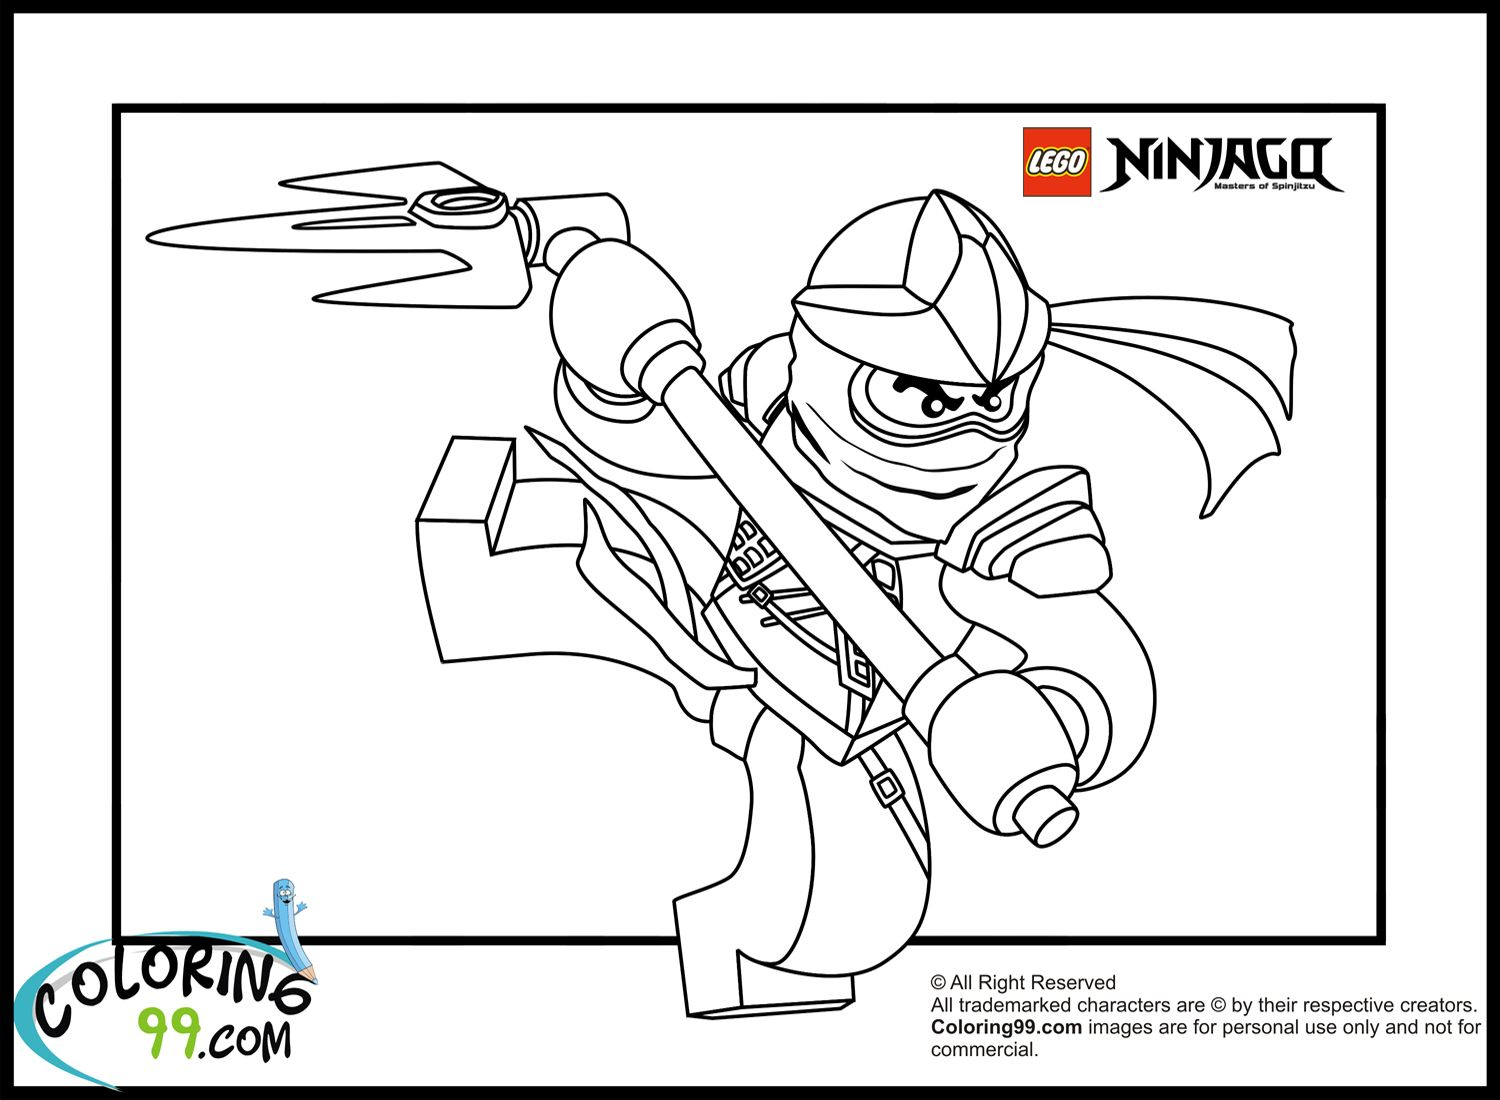 lego ninjago cole coloring pages coloring99 com lego party